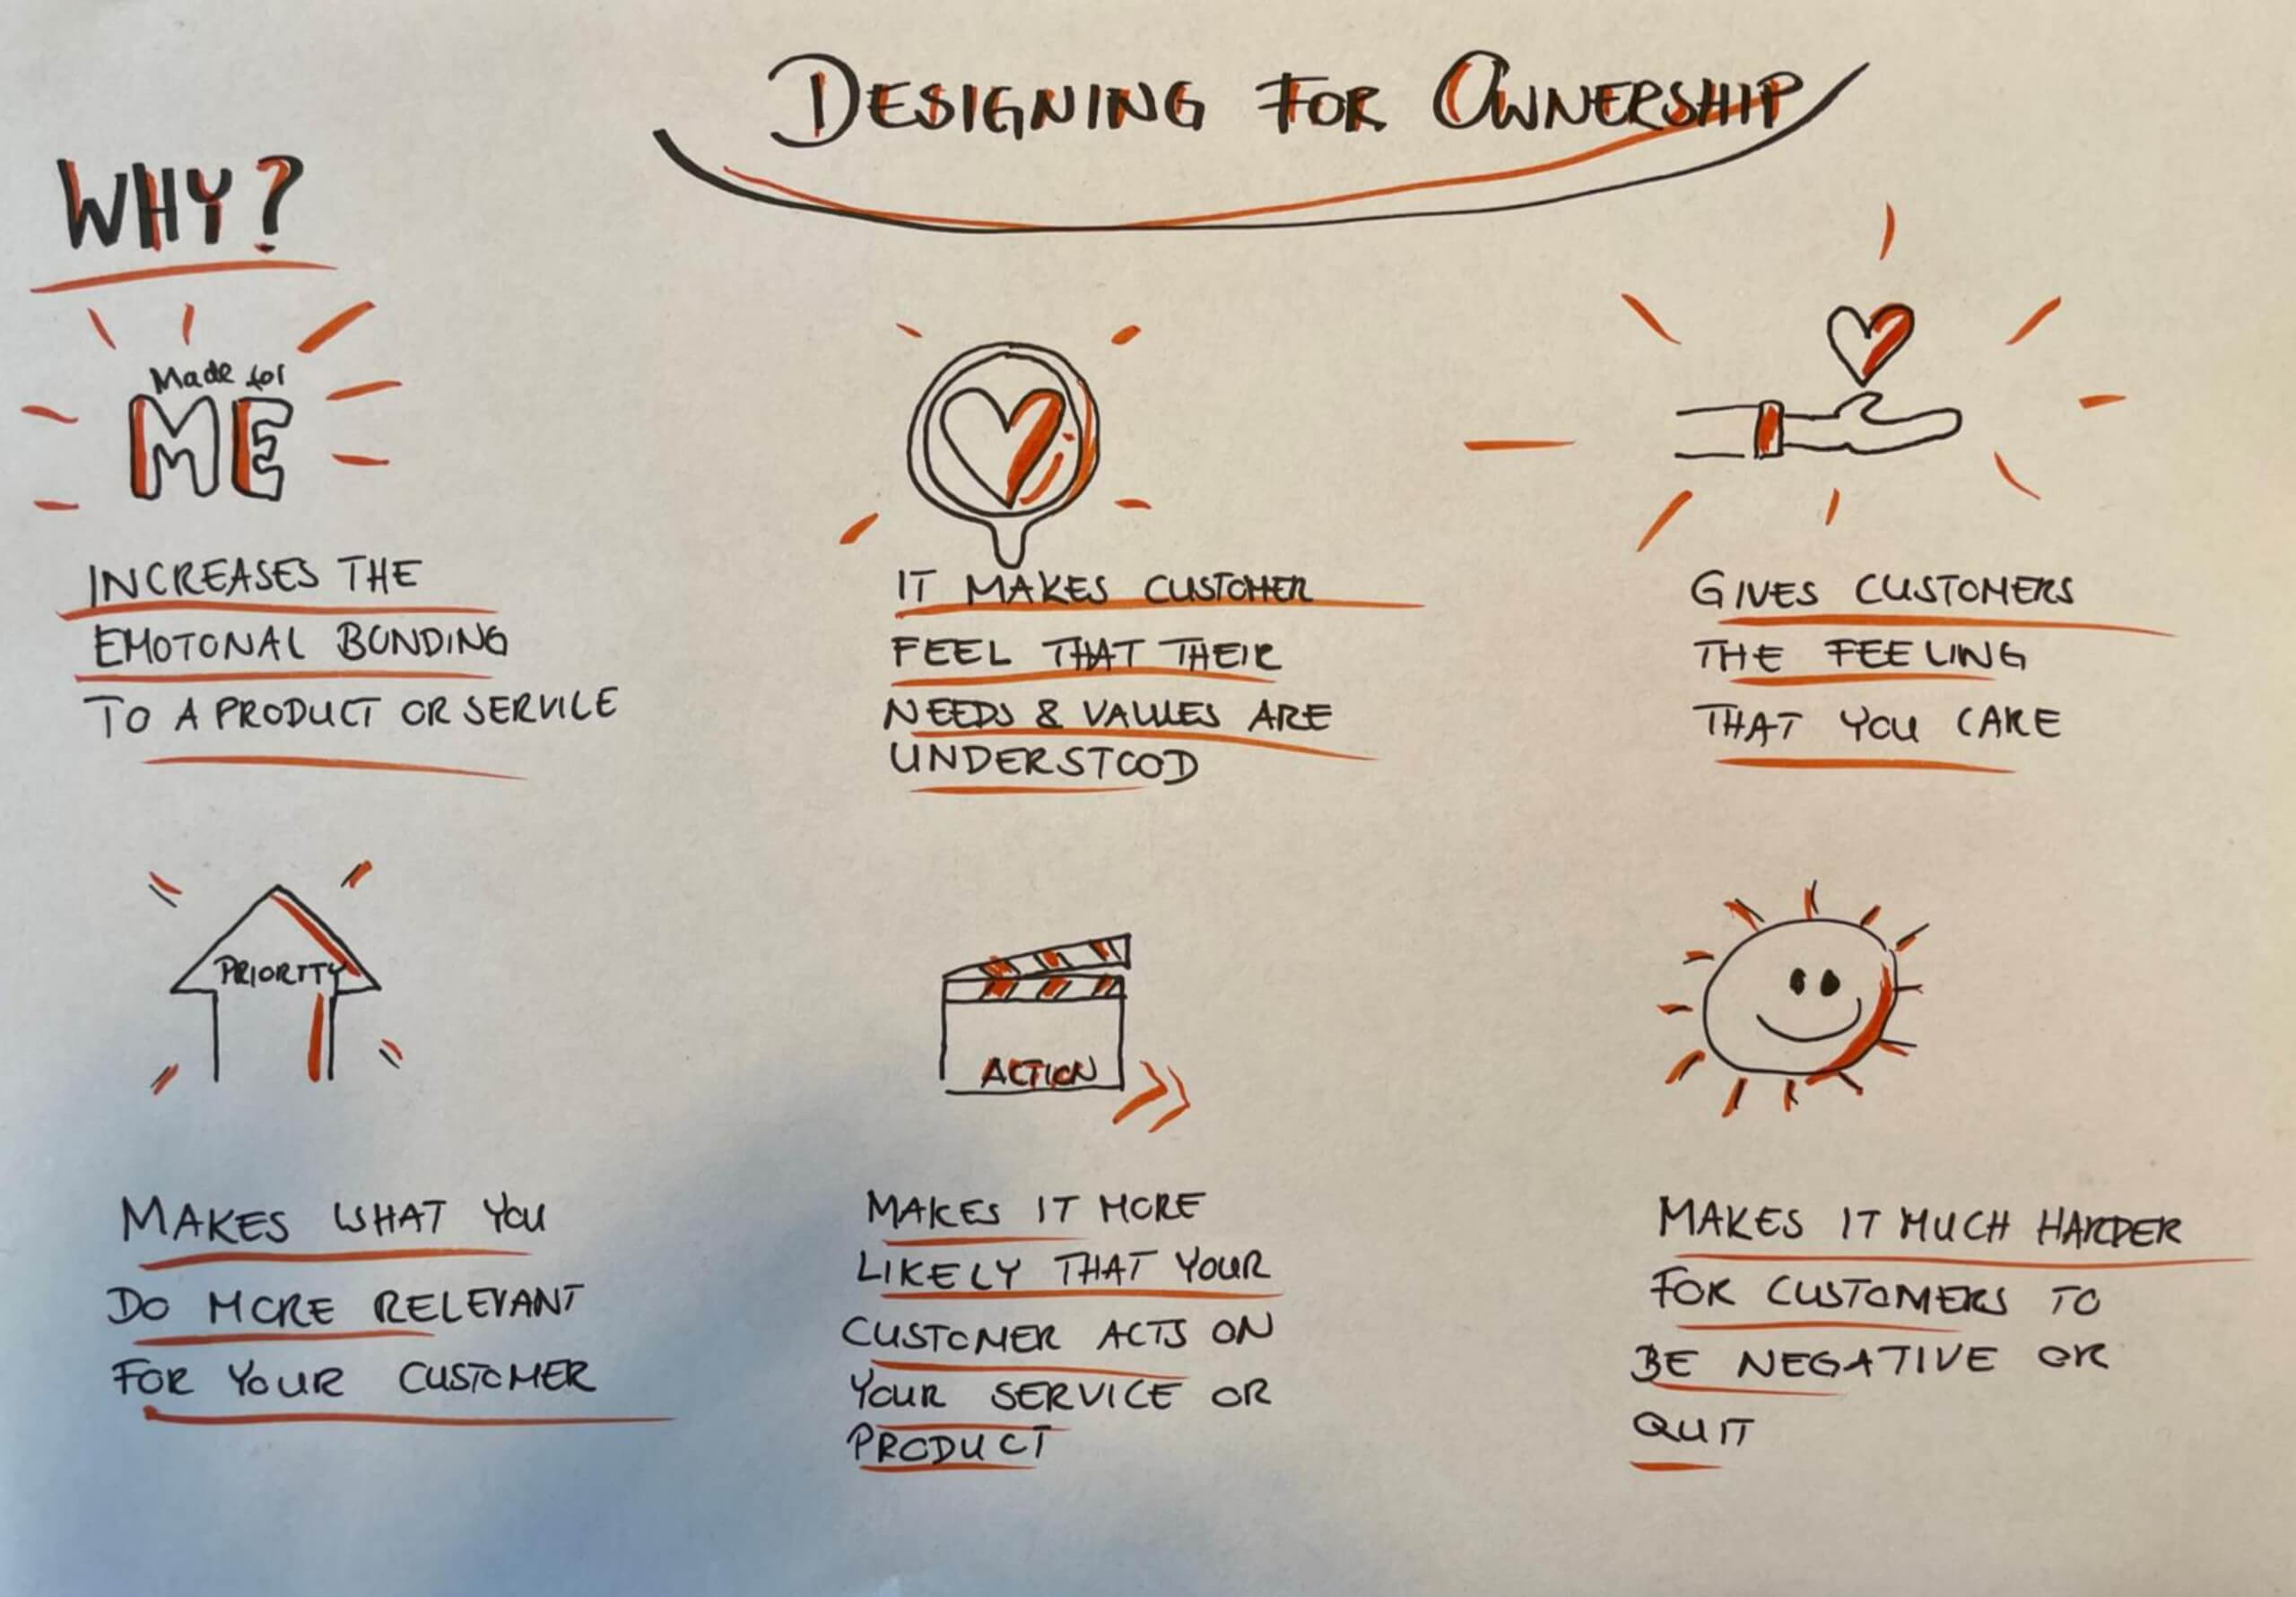 How to design for Behavior Change: Ownership